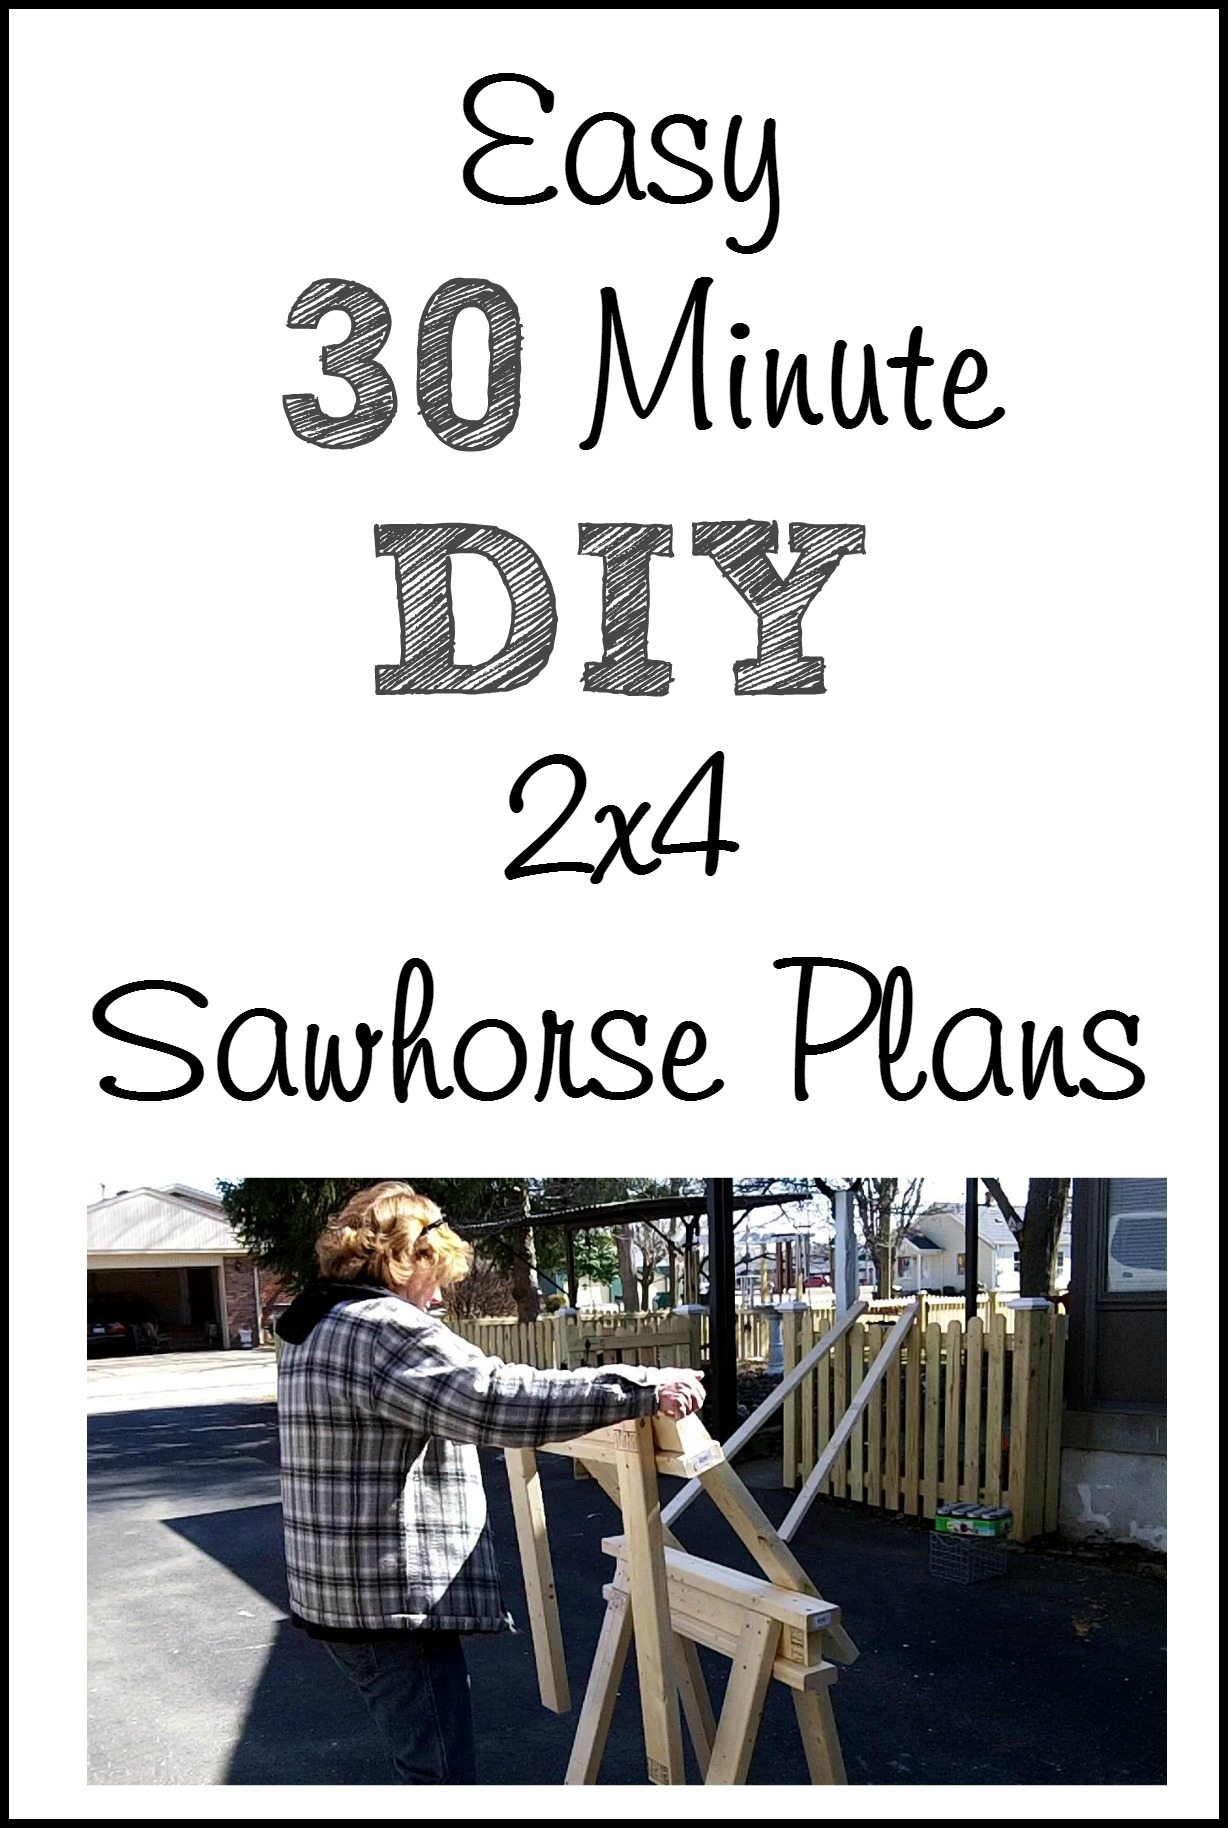 Easy 2x4 Sawhorse Plans My Repurposed Life 174